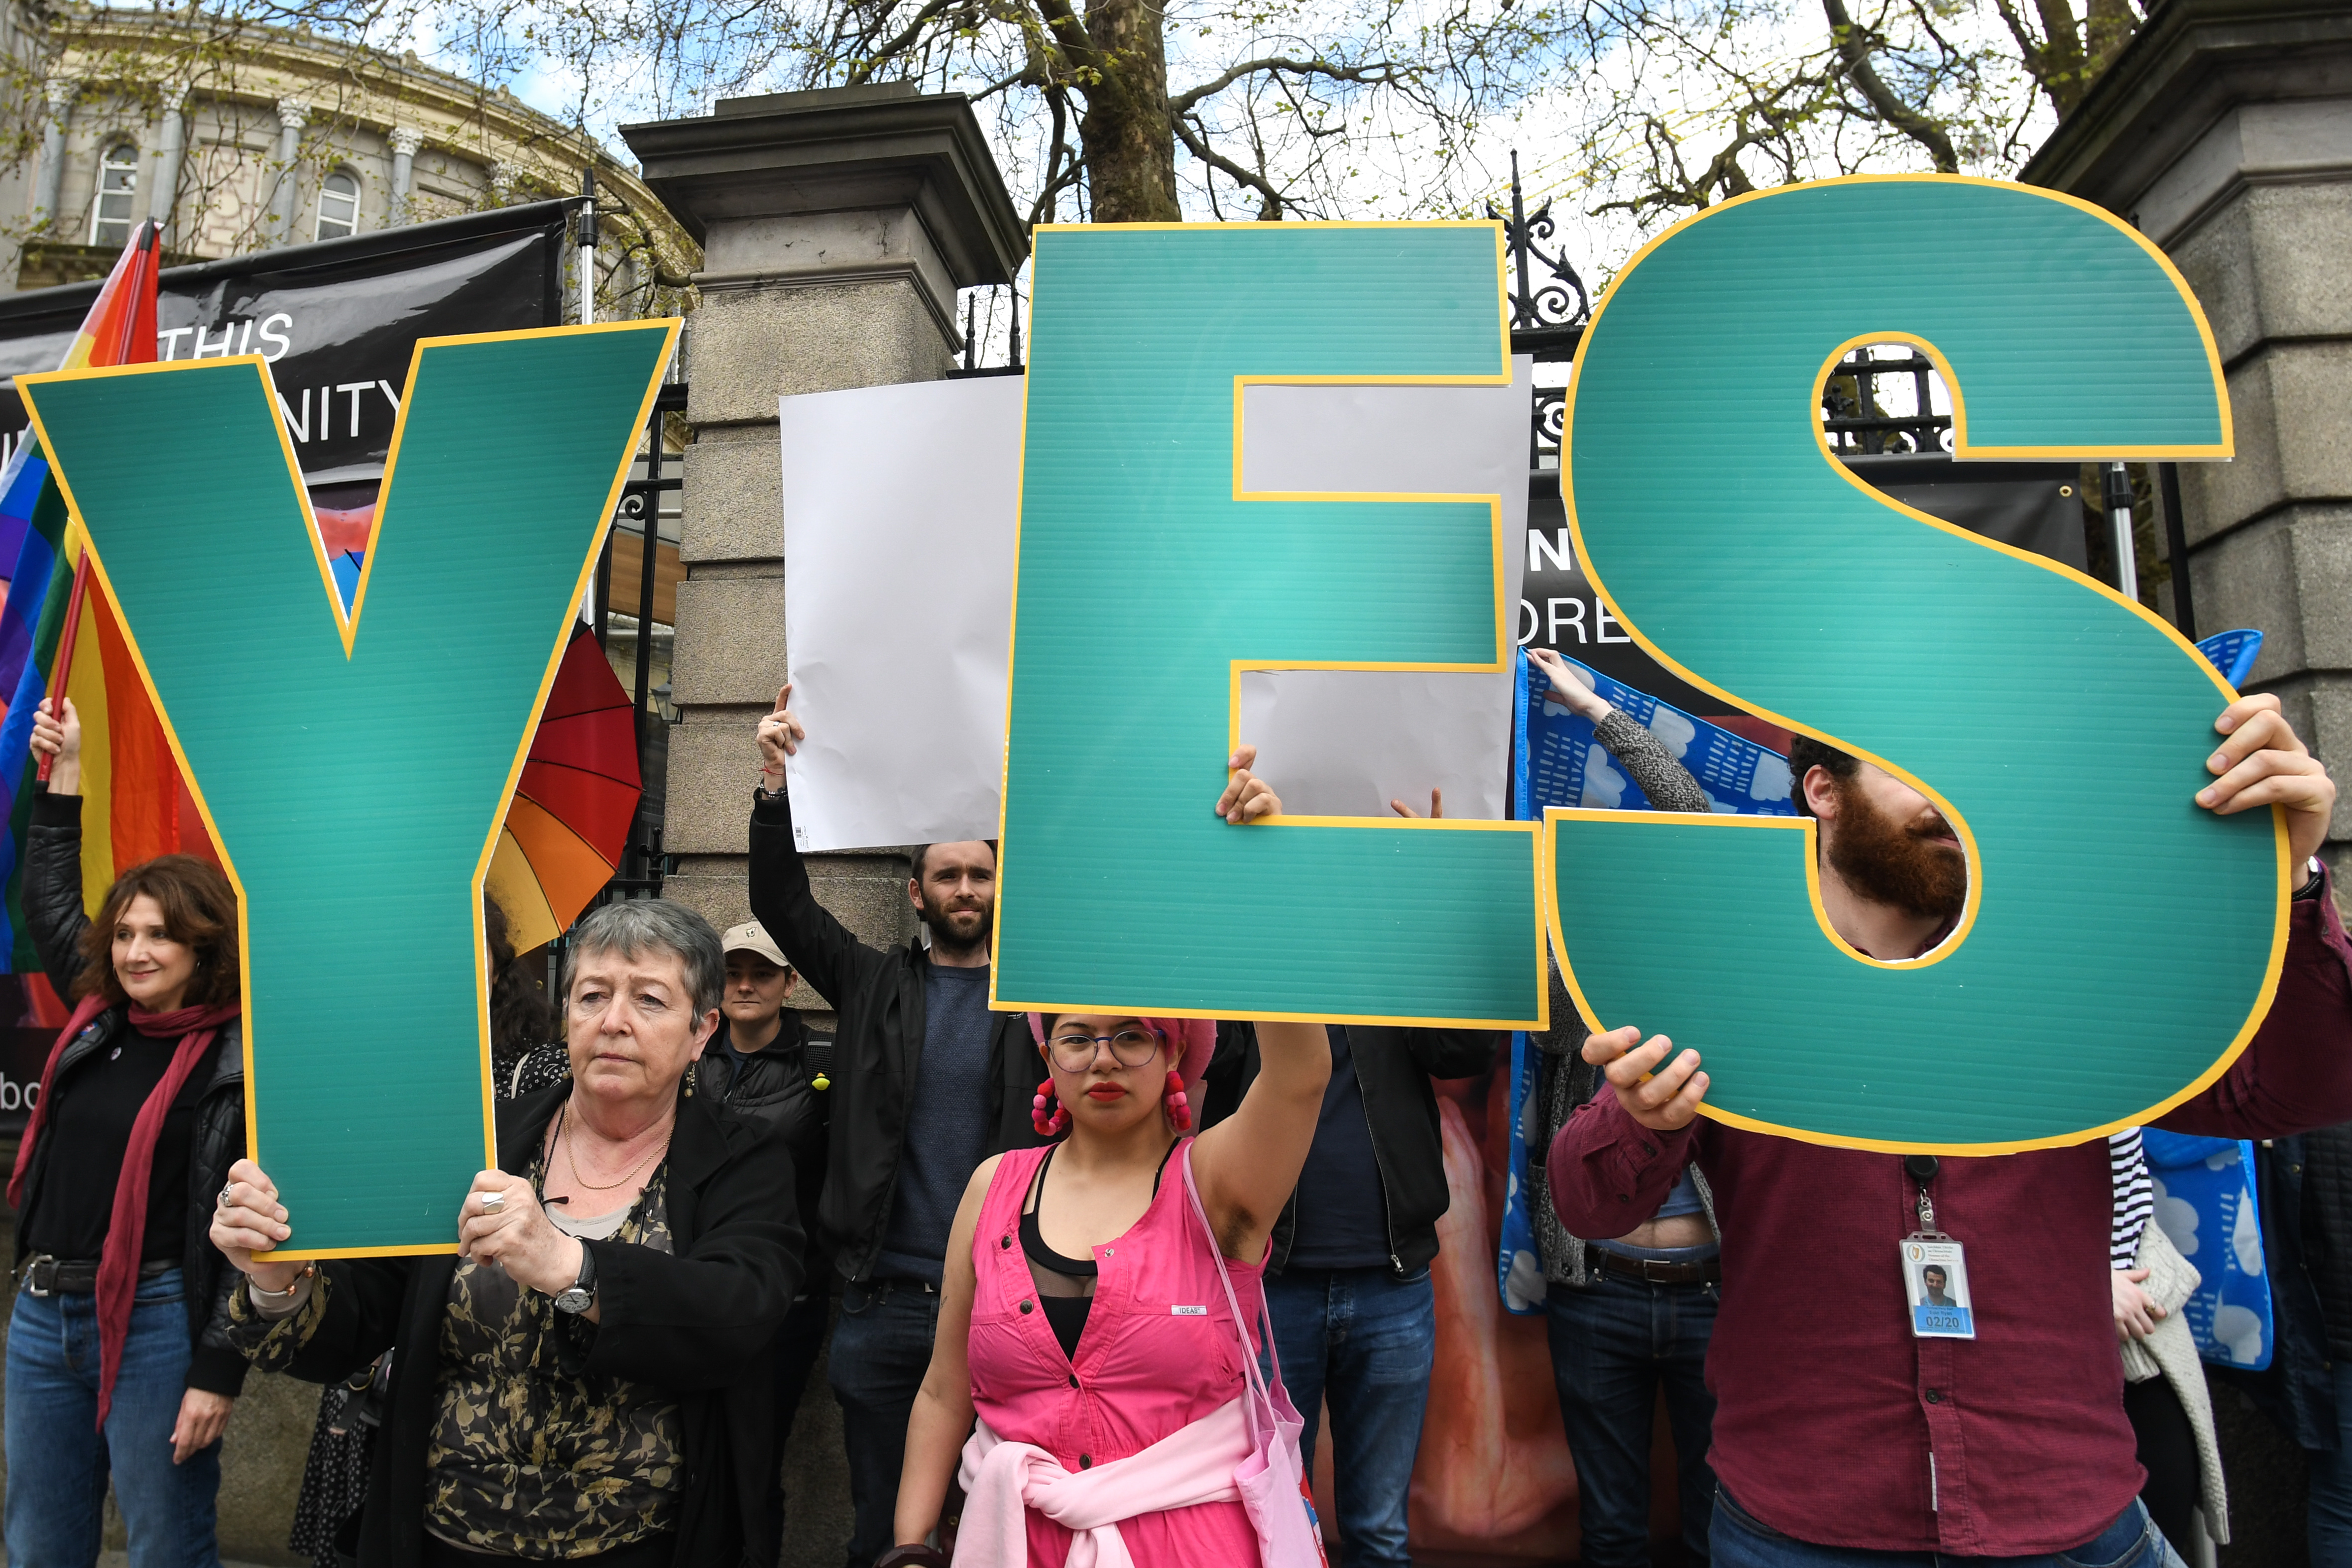 'Yes' vote campaigners cover anti-abortion group's graphic images related to pregnancy and abortion, with Irish and rainbow flags, and white billboards, outside Leinster House, the Irish Parliament, on Friday, May 4, 2018, in Dublin, Ireland.